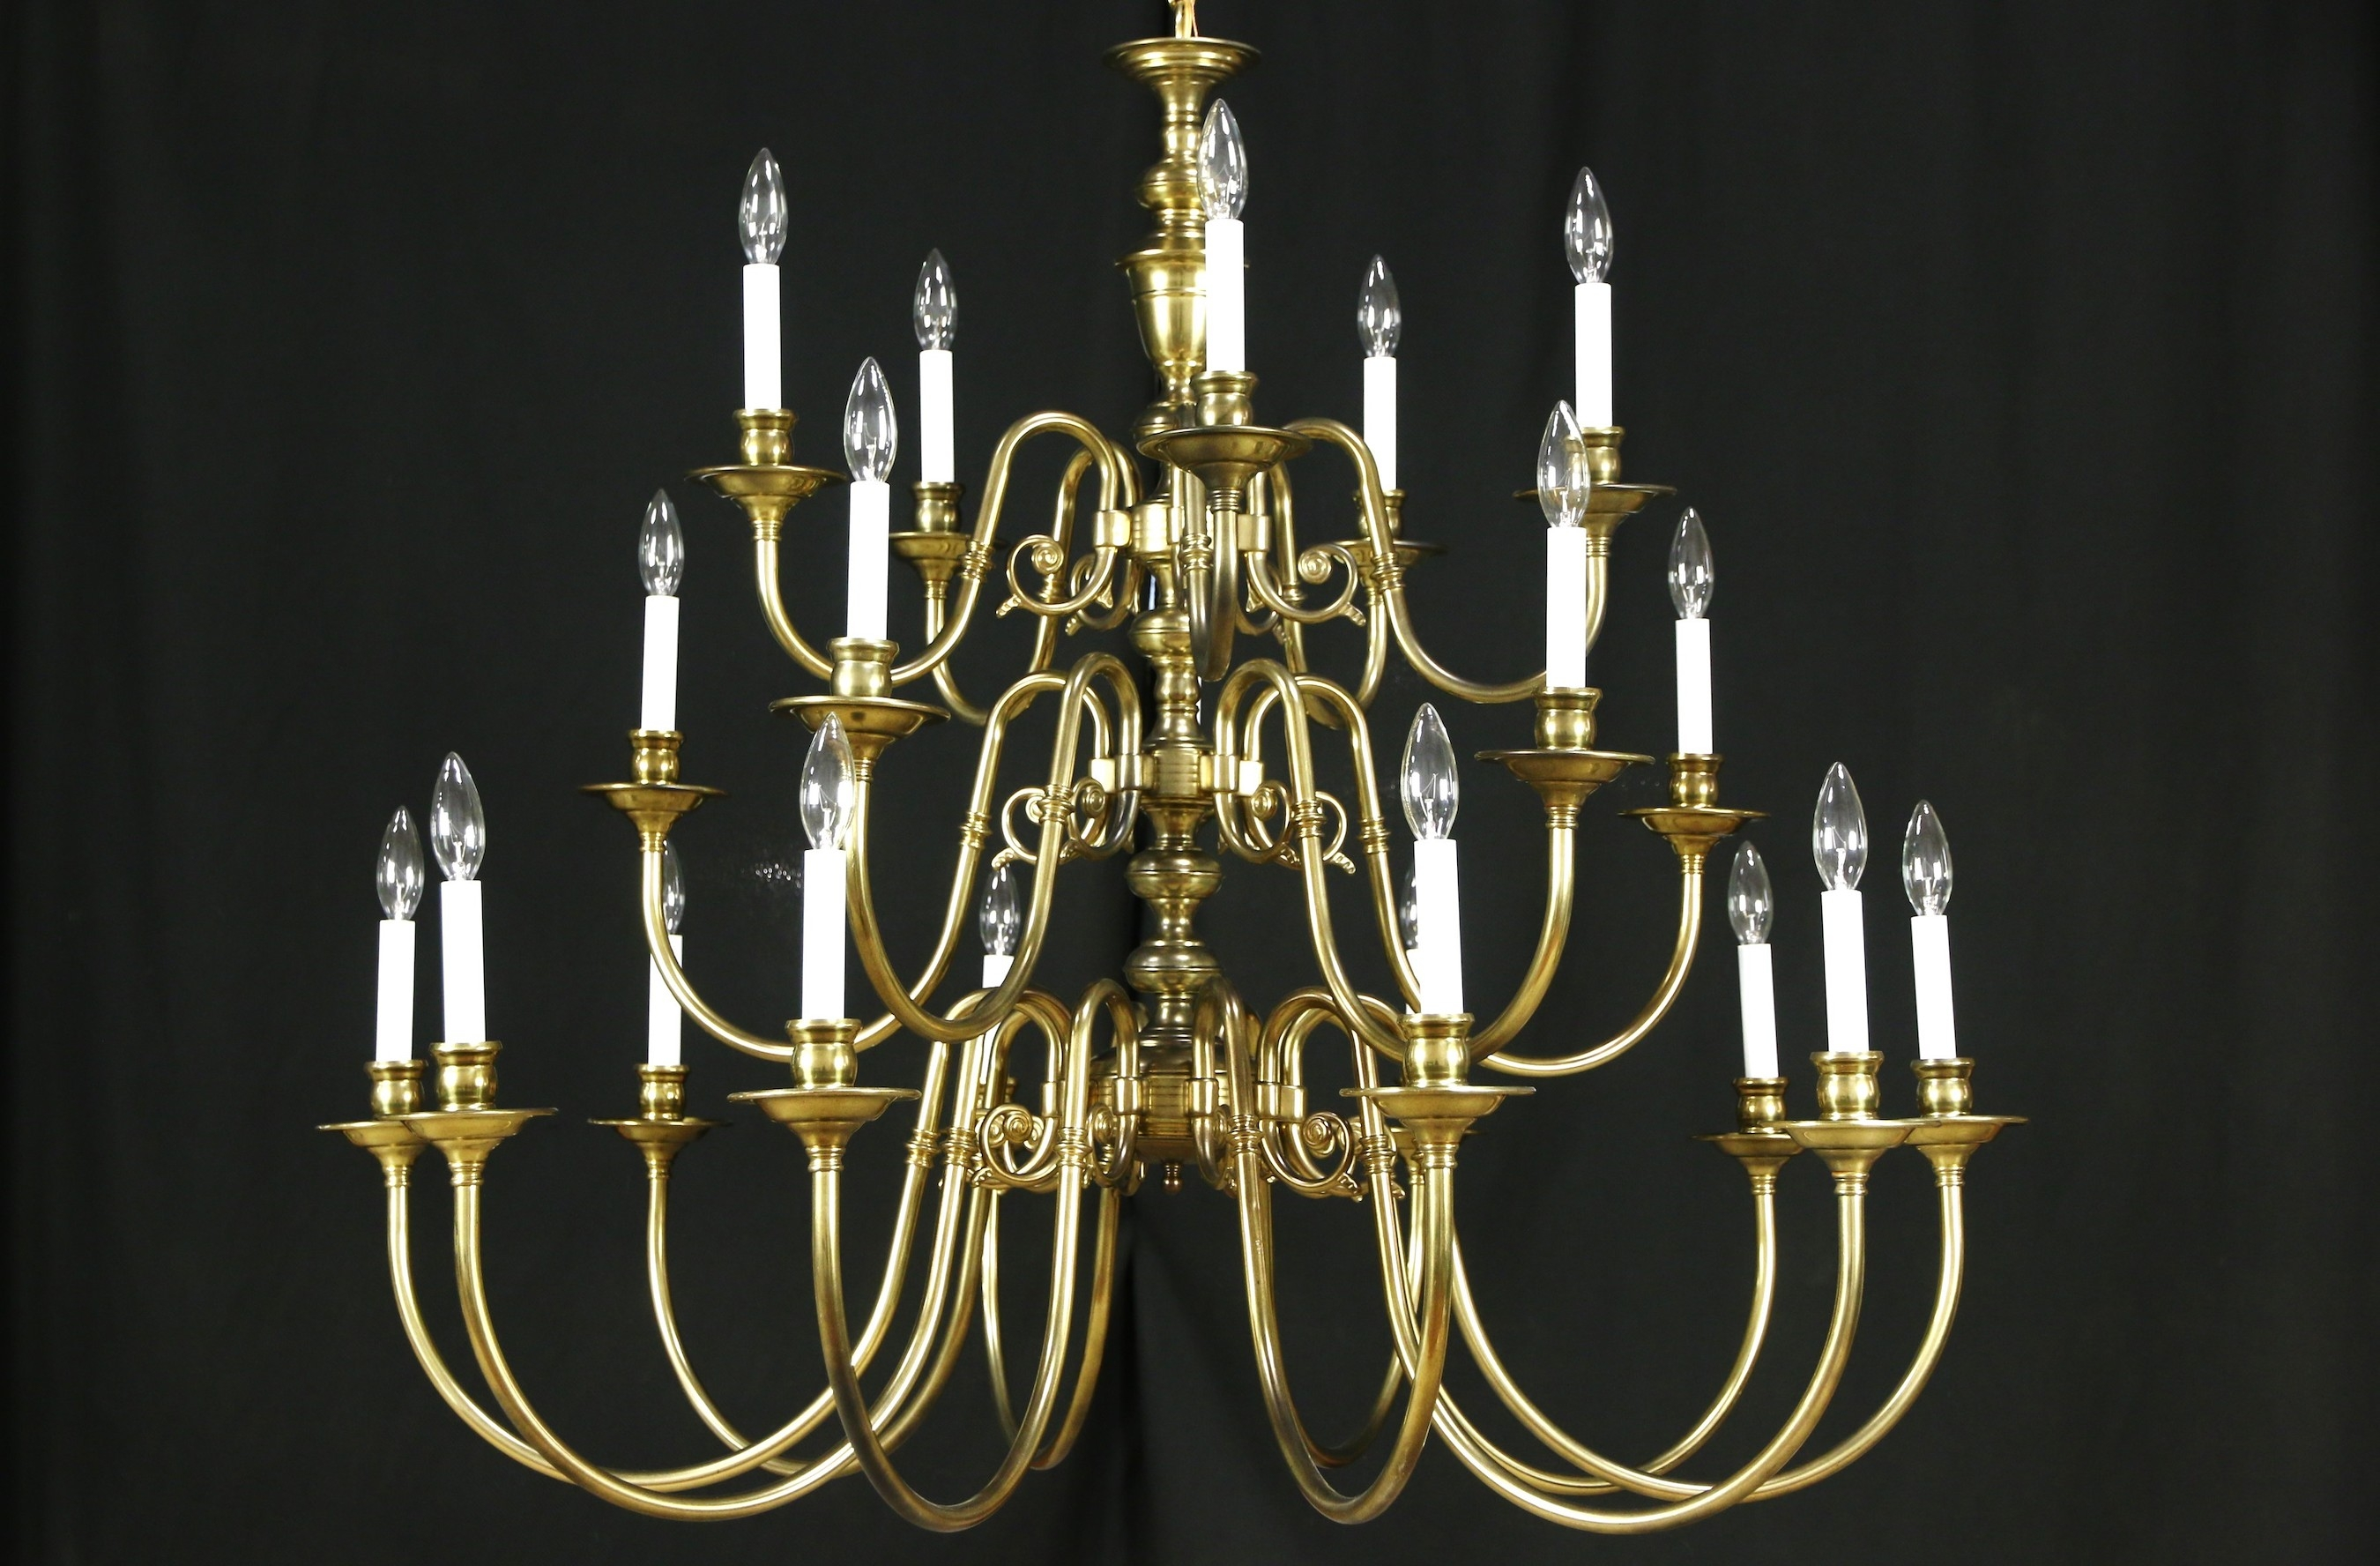 and italian mangan antiques empire chandeliers img french english chandelier style old fashioned